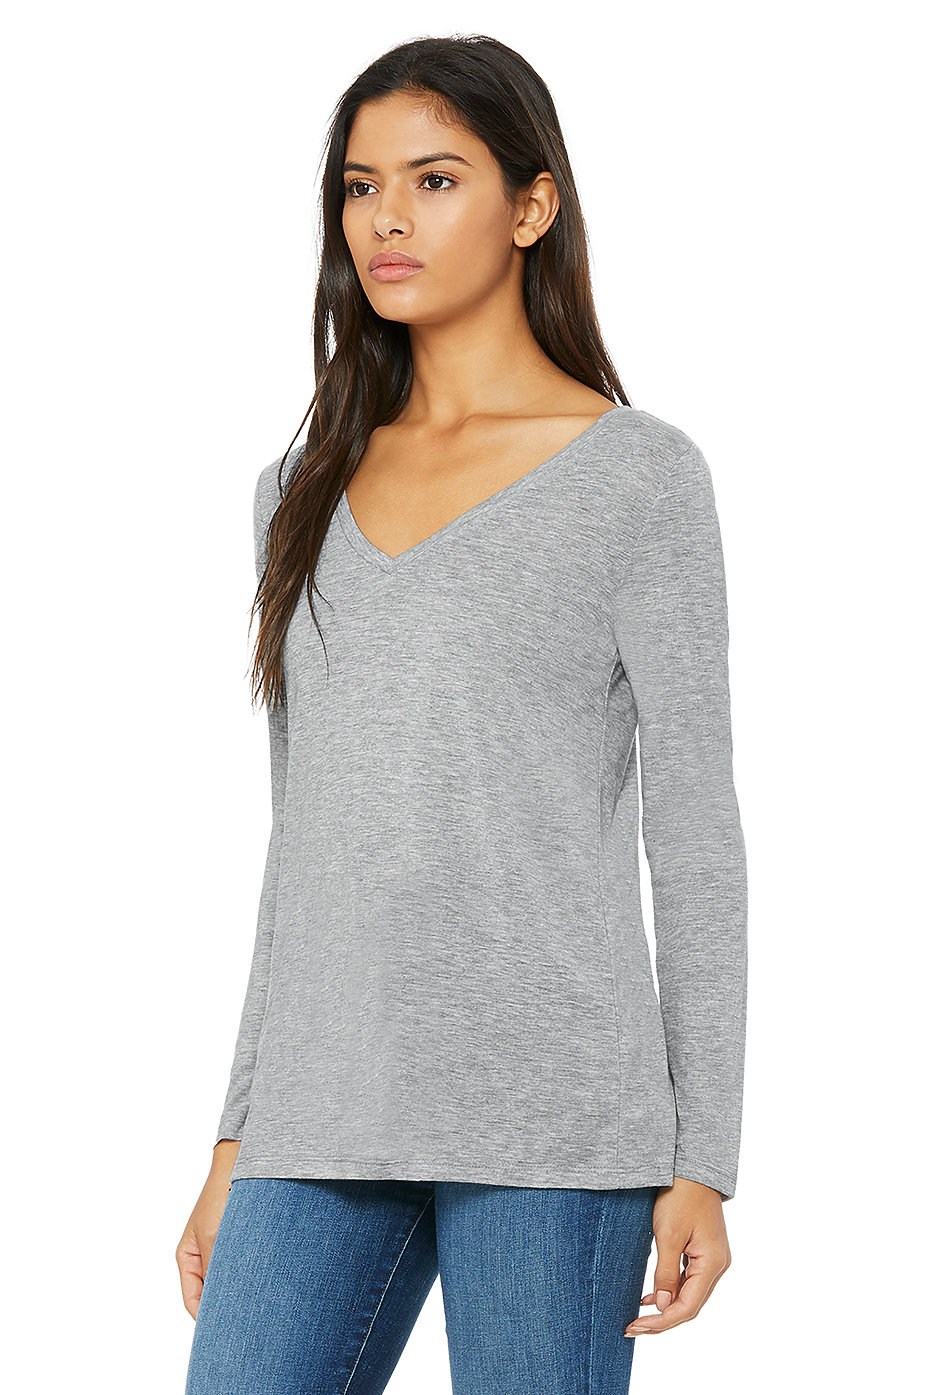 c6377704d6 Home   Pricing Product   8855 Women s Flowy Long Sleeve V-Neck